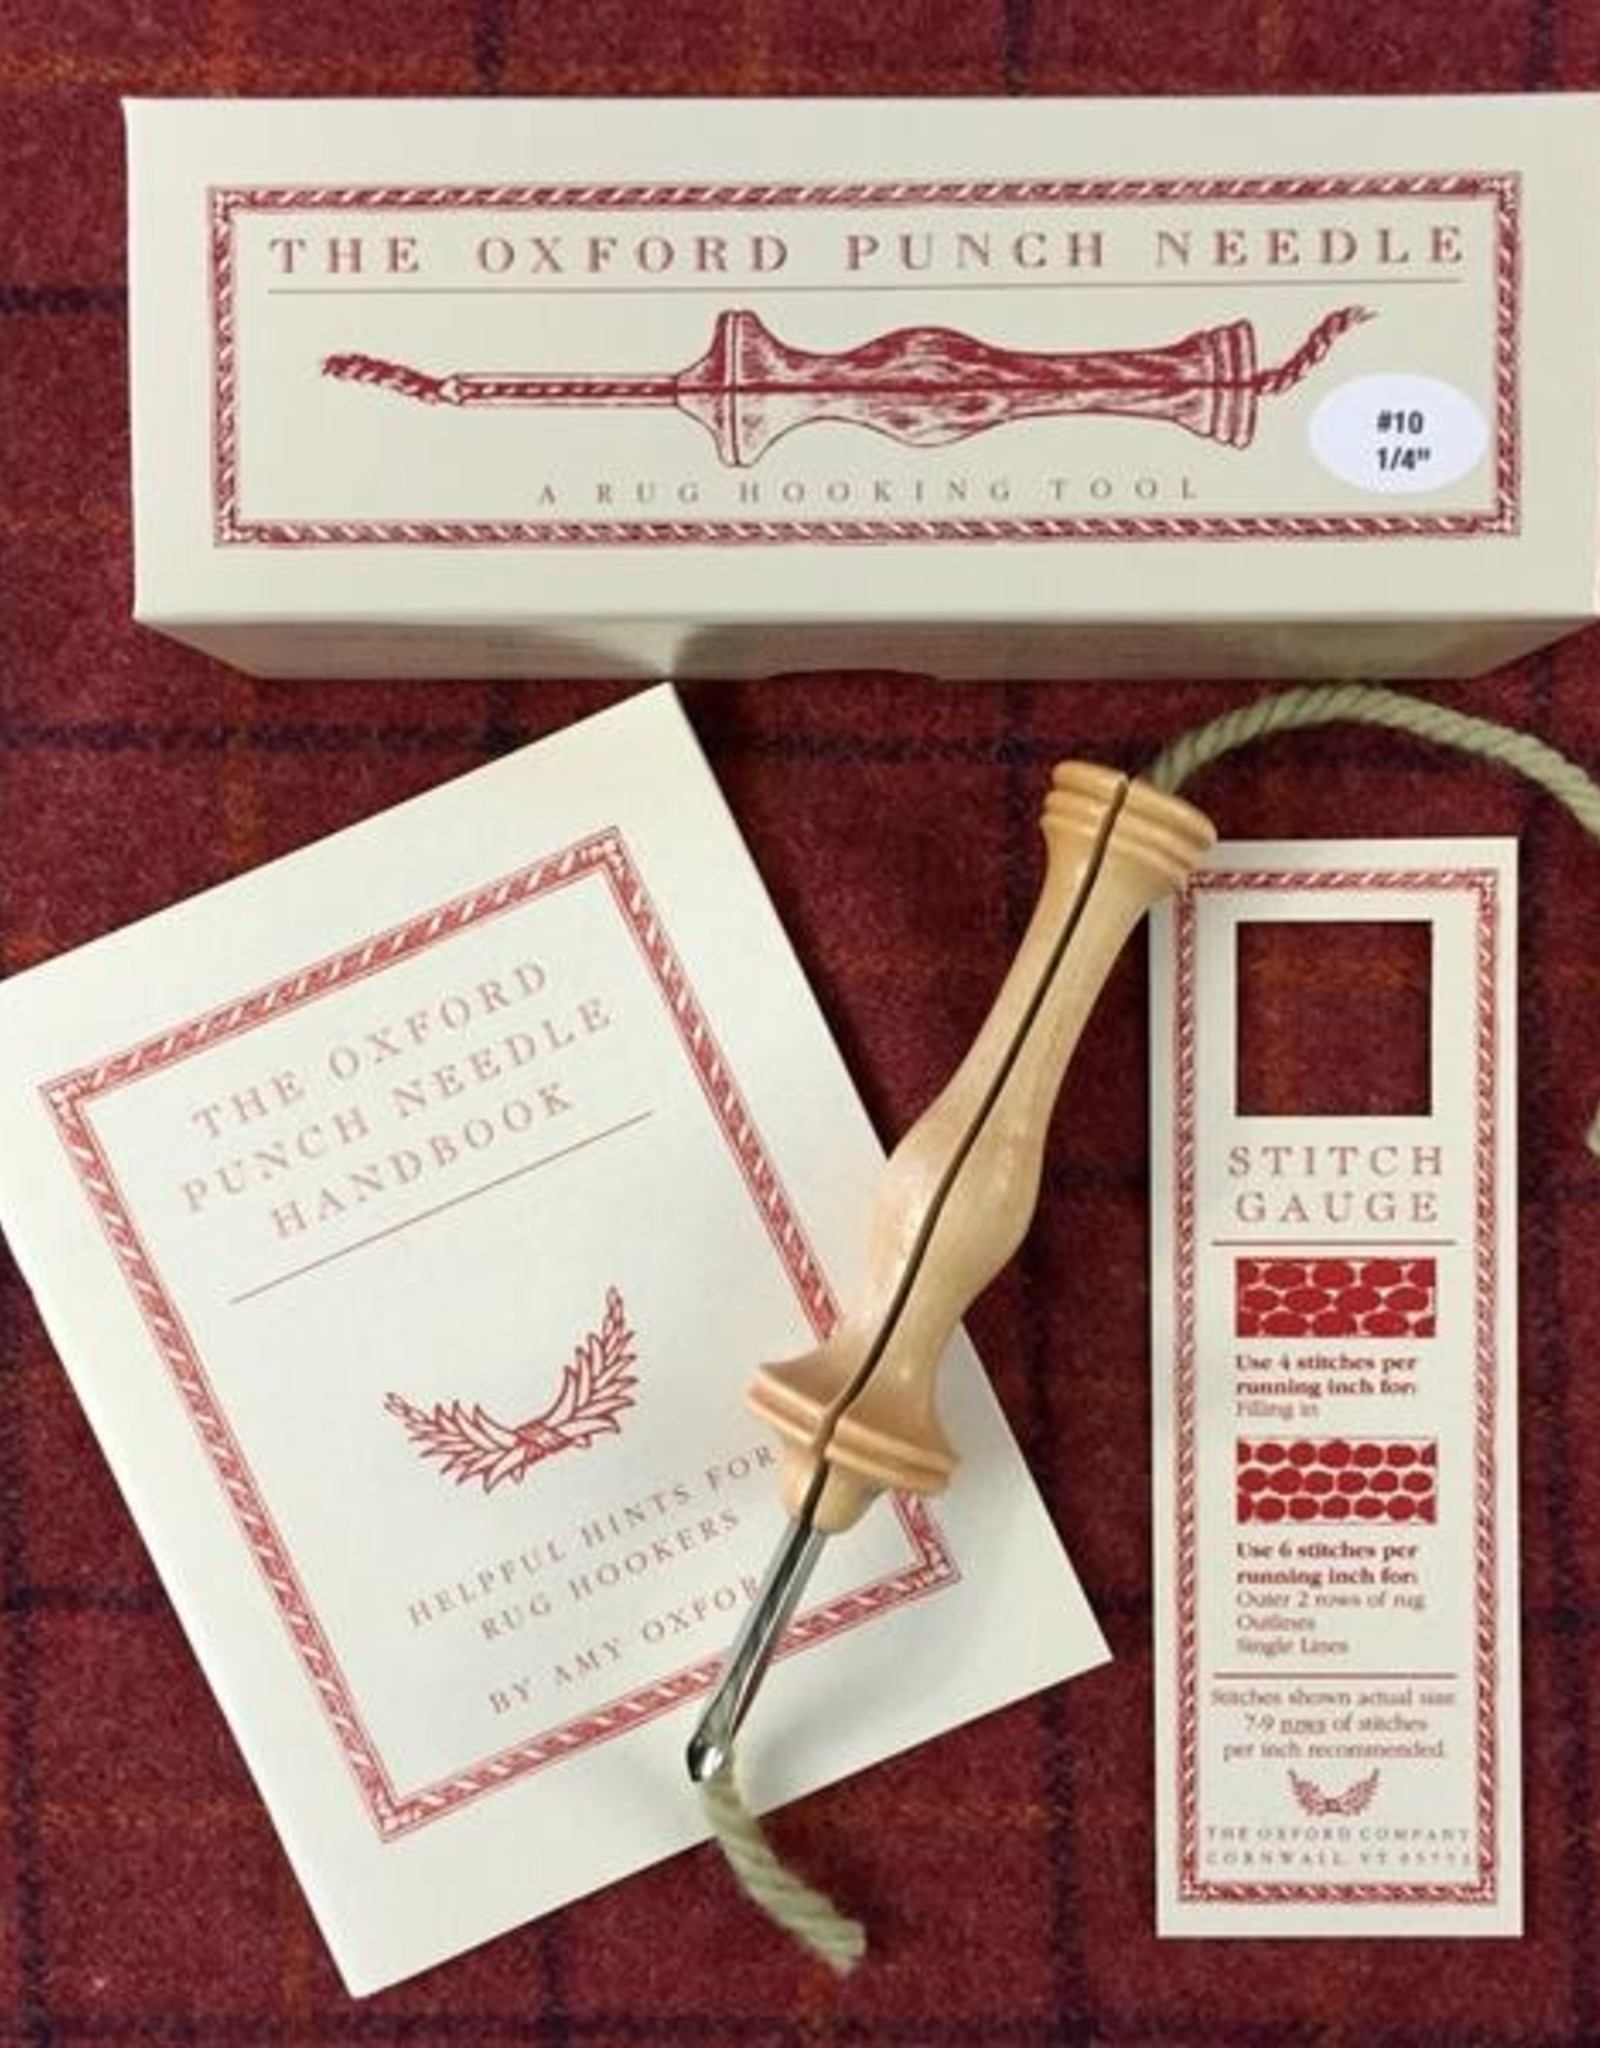 Oxford Punch Needle